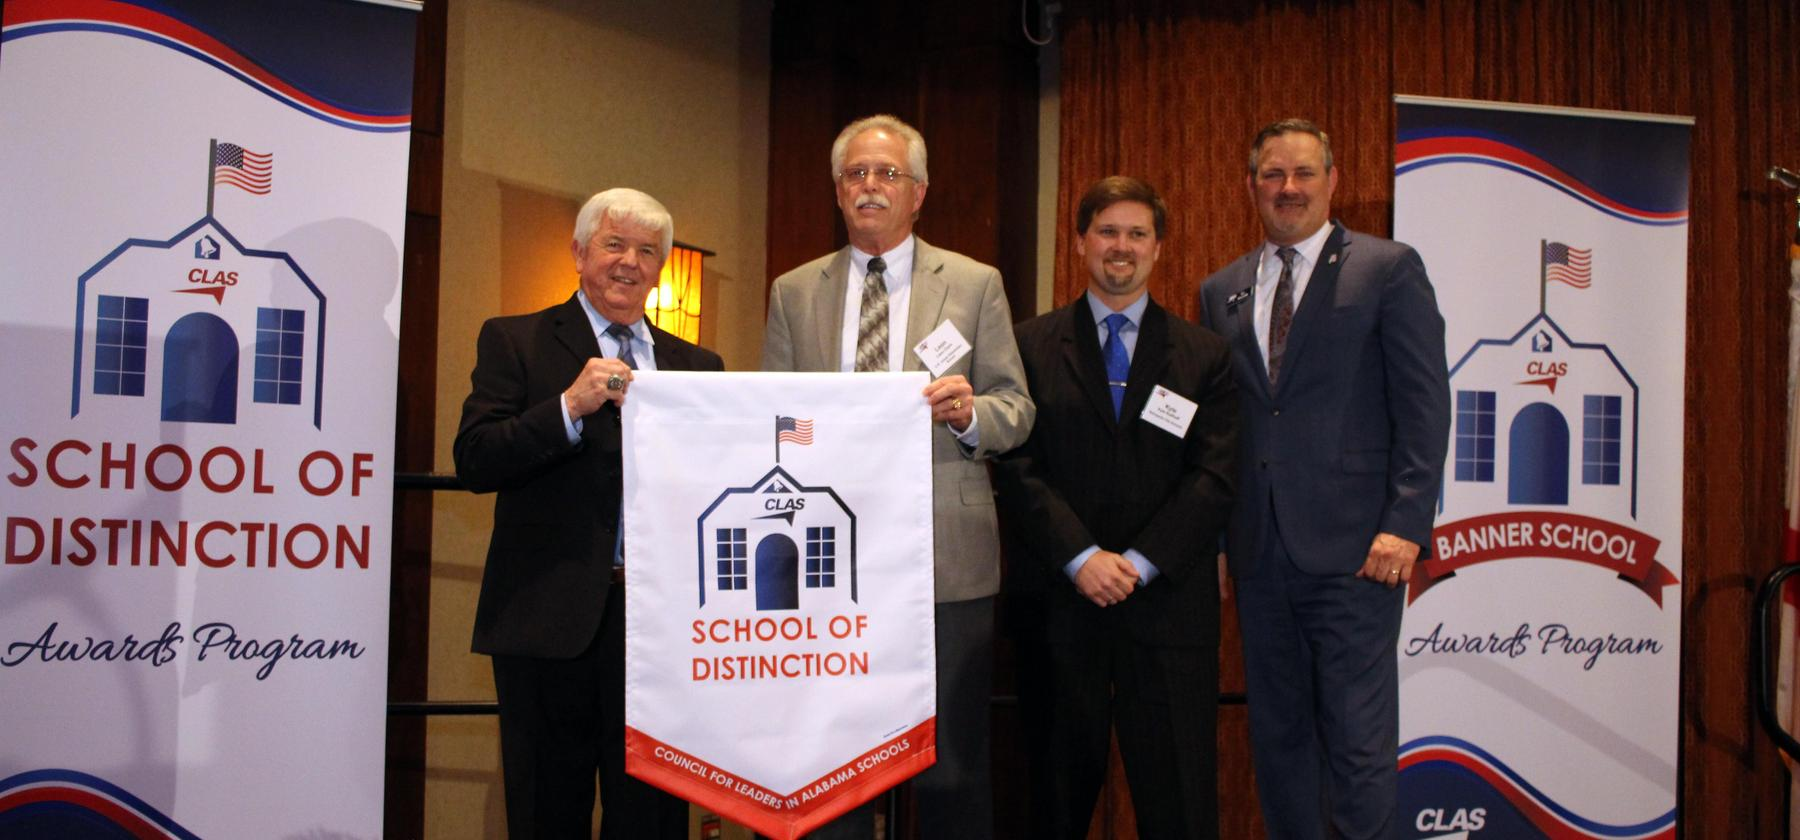 USJ CLAS Banner School of Distinction